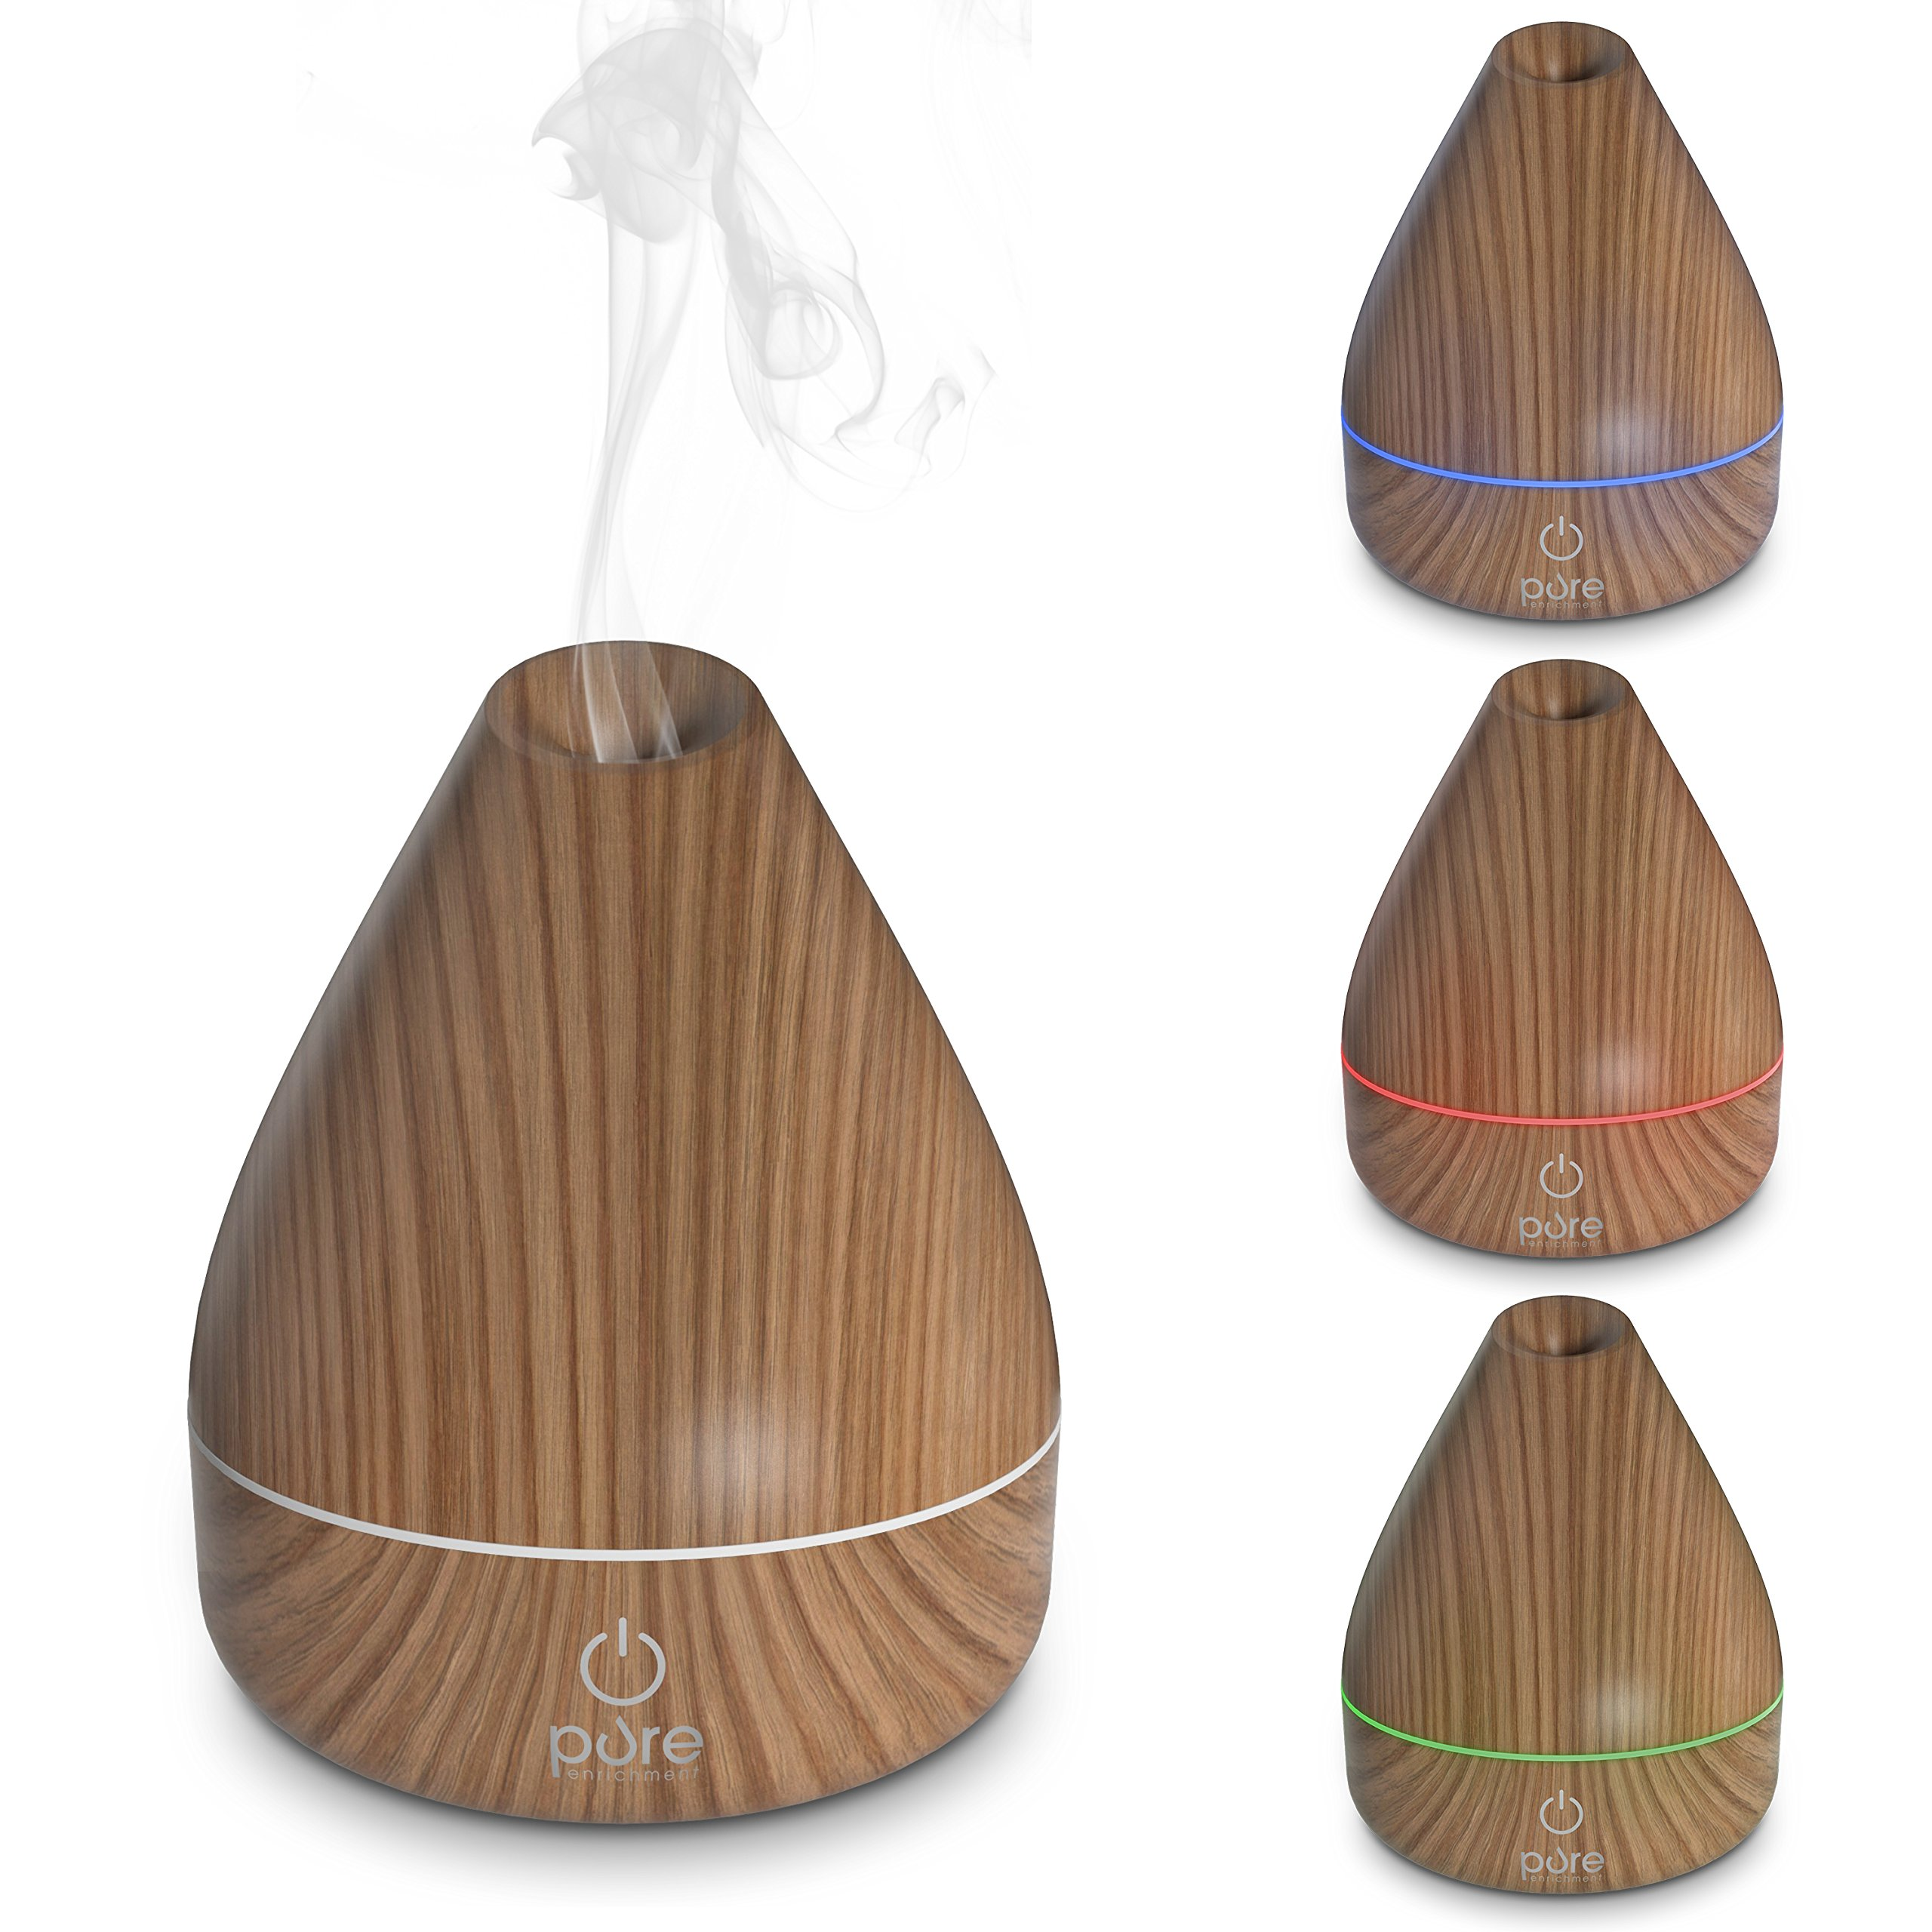 PureSpa Natural Aromatherapy Oil Diffuser – Ultrasonic Mister with 200ml Water Tank, Wood-Grain Accents and Soft Color-Changing Lights